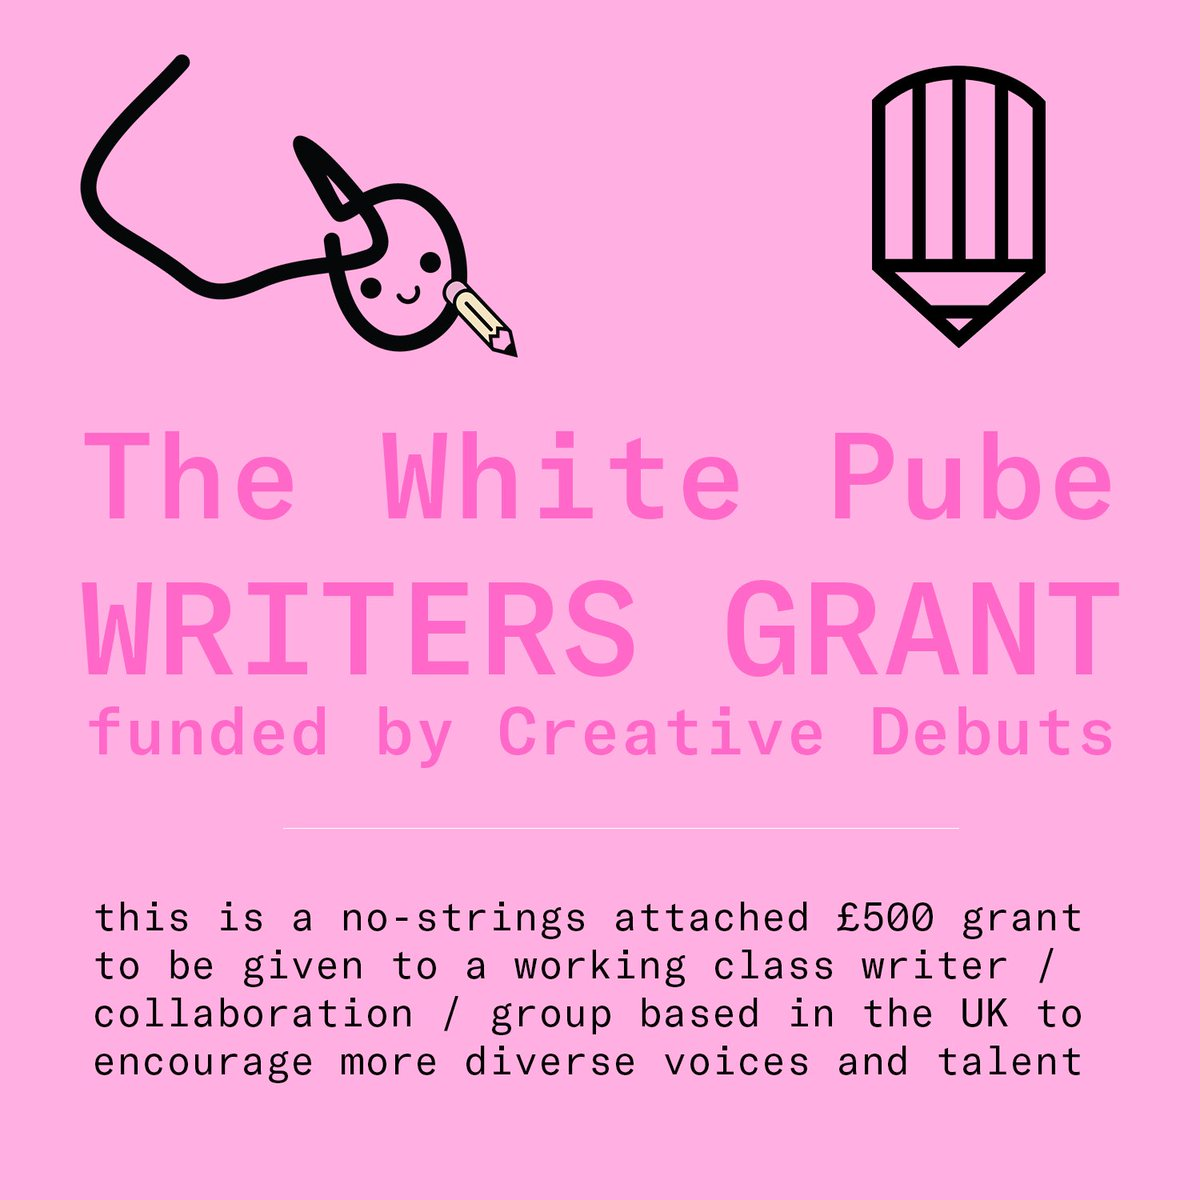 ANNOUNCING The White Pube Writers Grant funded by @CreativeDebuts, a £500 no-strings attached grant to be given out monthly to a working class writer based in the UK (could also be a writing collab or group, not just individuals) ✏️ info here: thewhitepube.com/writersgrant!!!!!!!